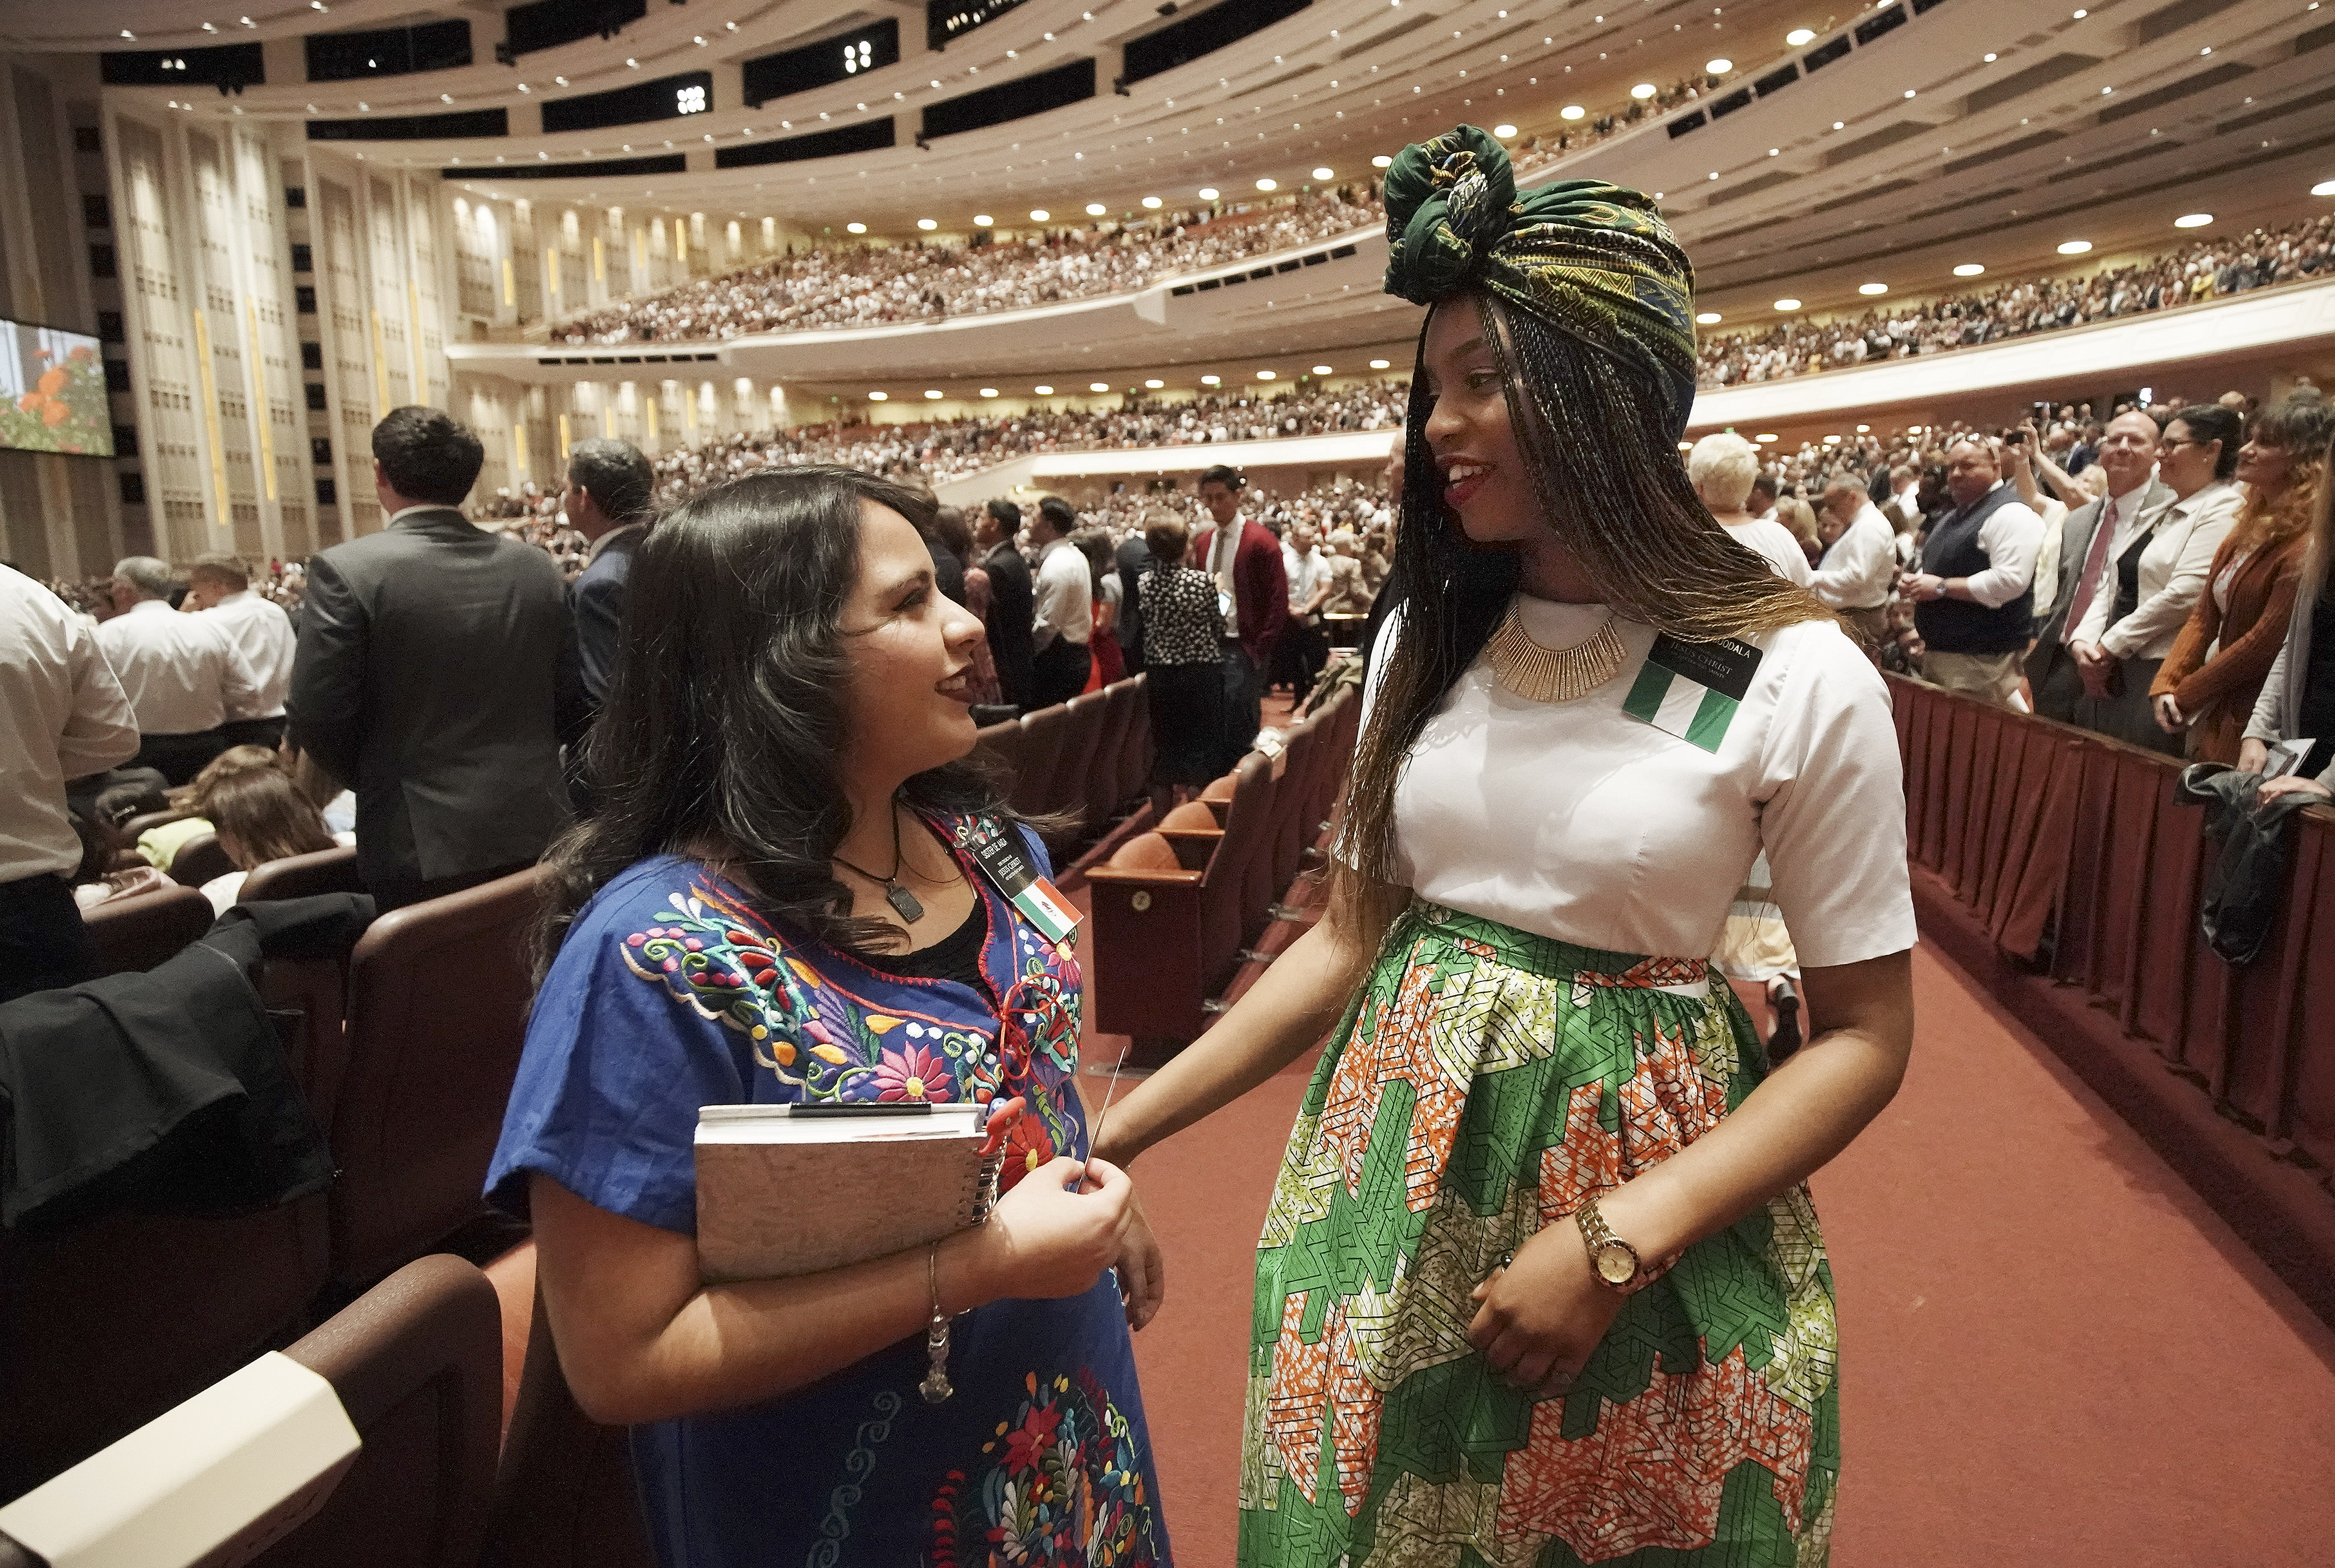 Sisters Marisol De Anda and Andrea Iguodala attend the Sunday afternoon session of the 189th Semiannual General Conference of The Church of Jesus Christ of Latter-day Saints in Salt Lake City on Oct. 6, 2019.